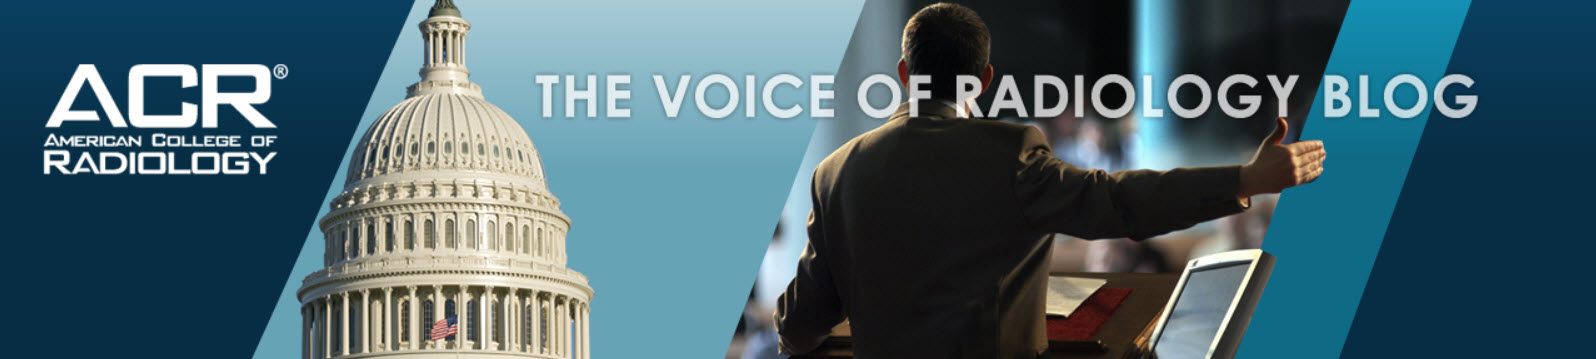 Voice of Radiology